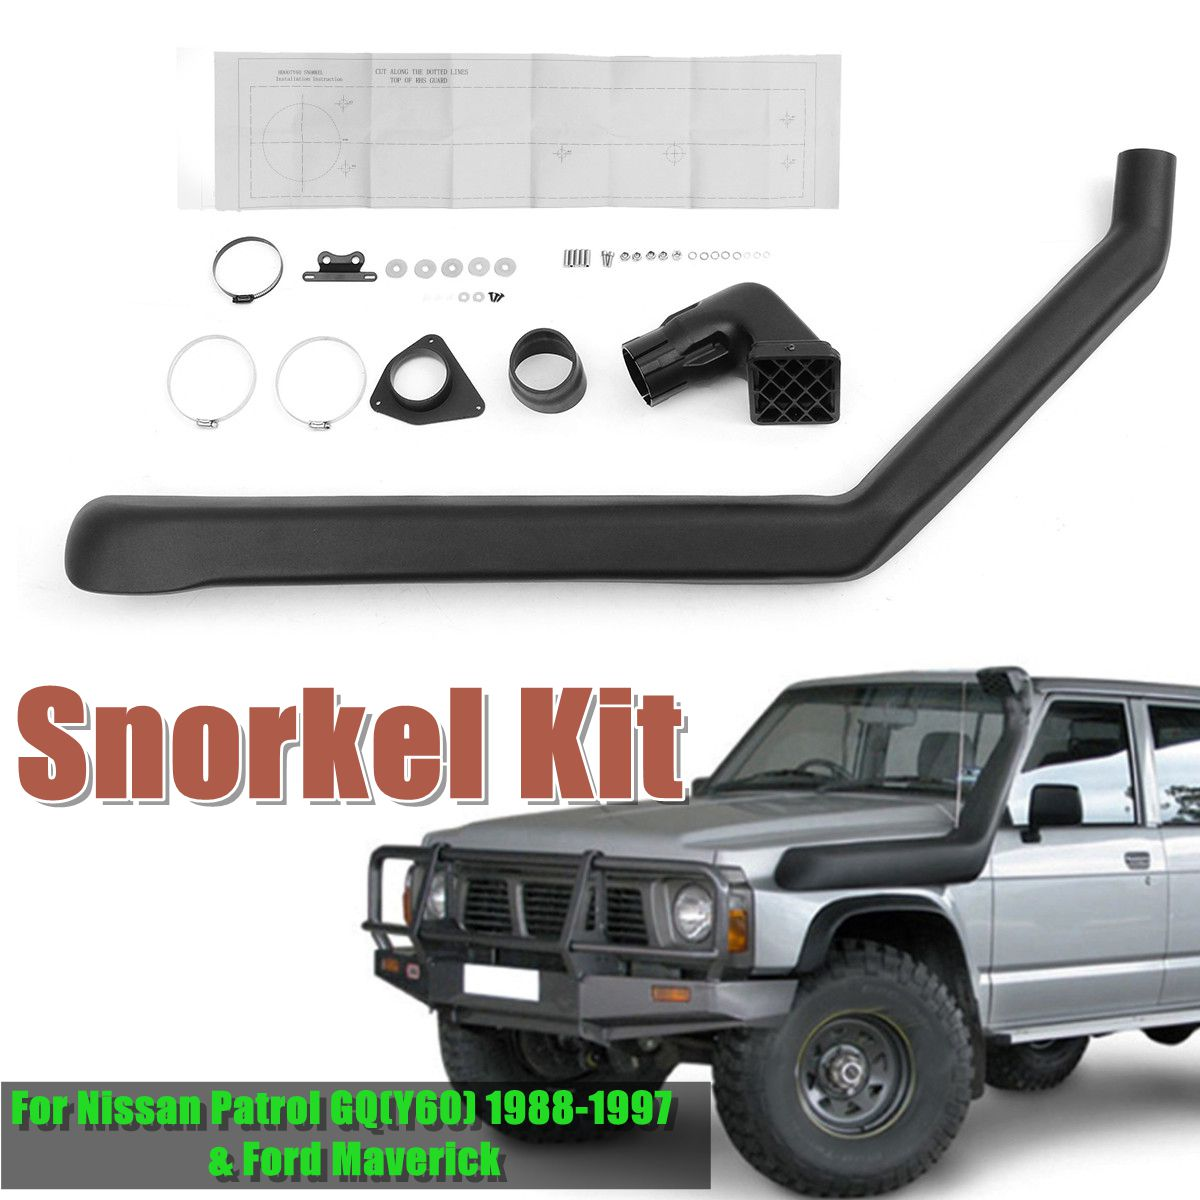 Air Intake System Intake Snorkel Kit For Nissan Patrol GQ(Y60) 1988-1997 For Ford Maverick